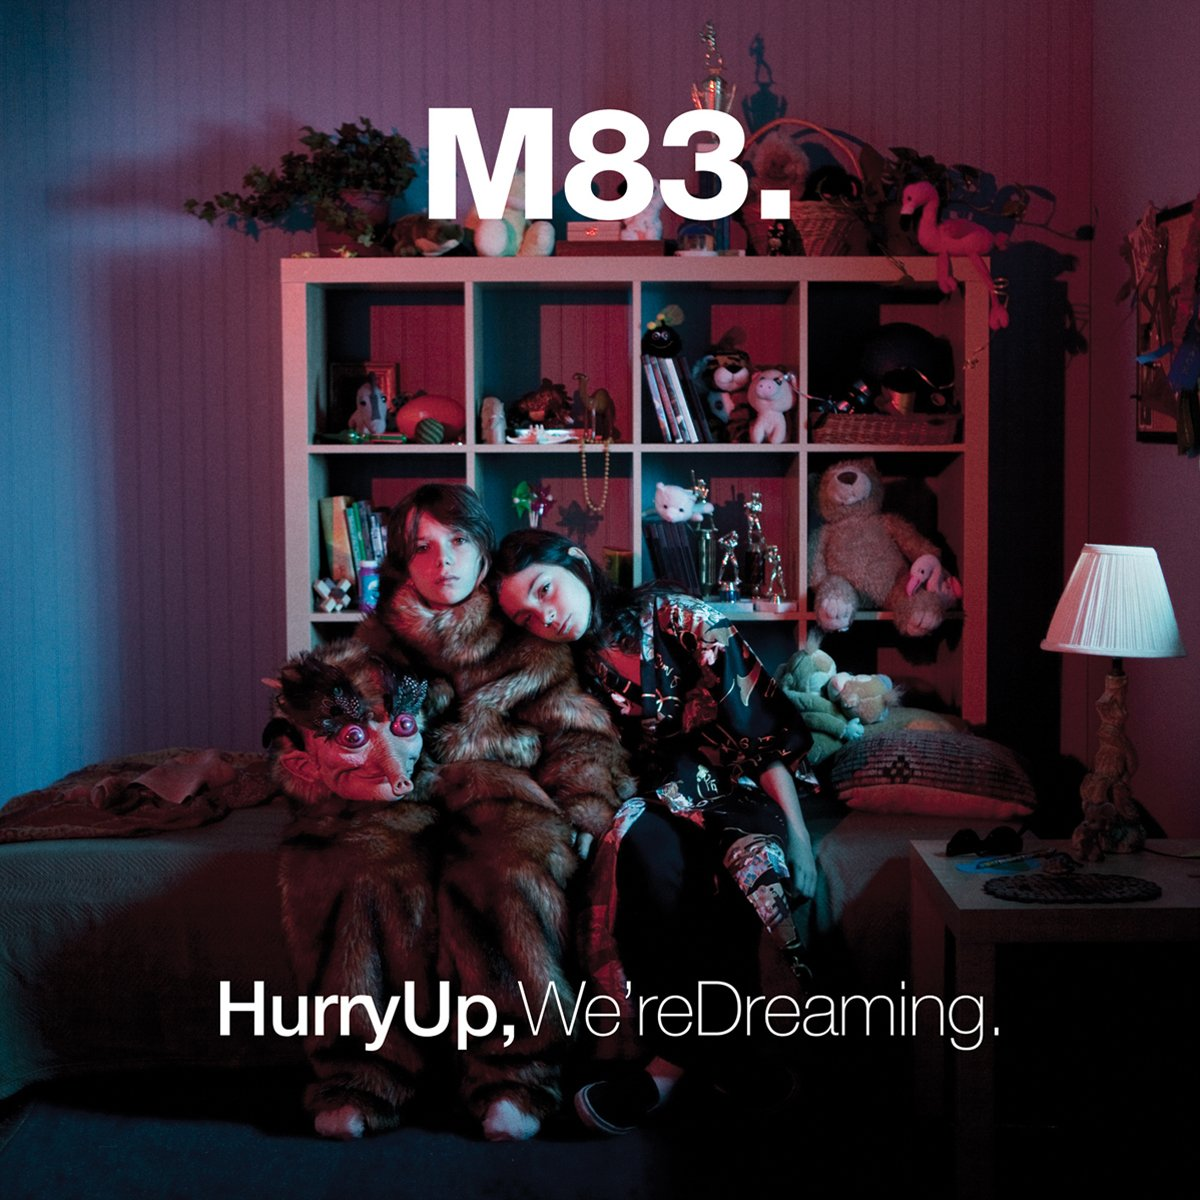 M83, Hurry Up, We're Dreaming